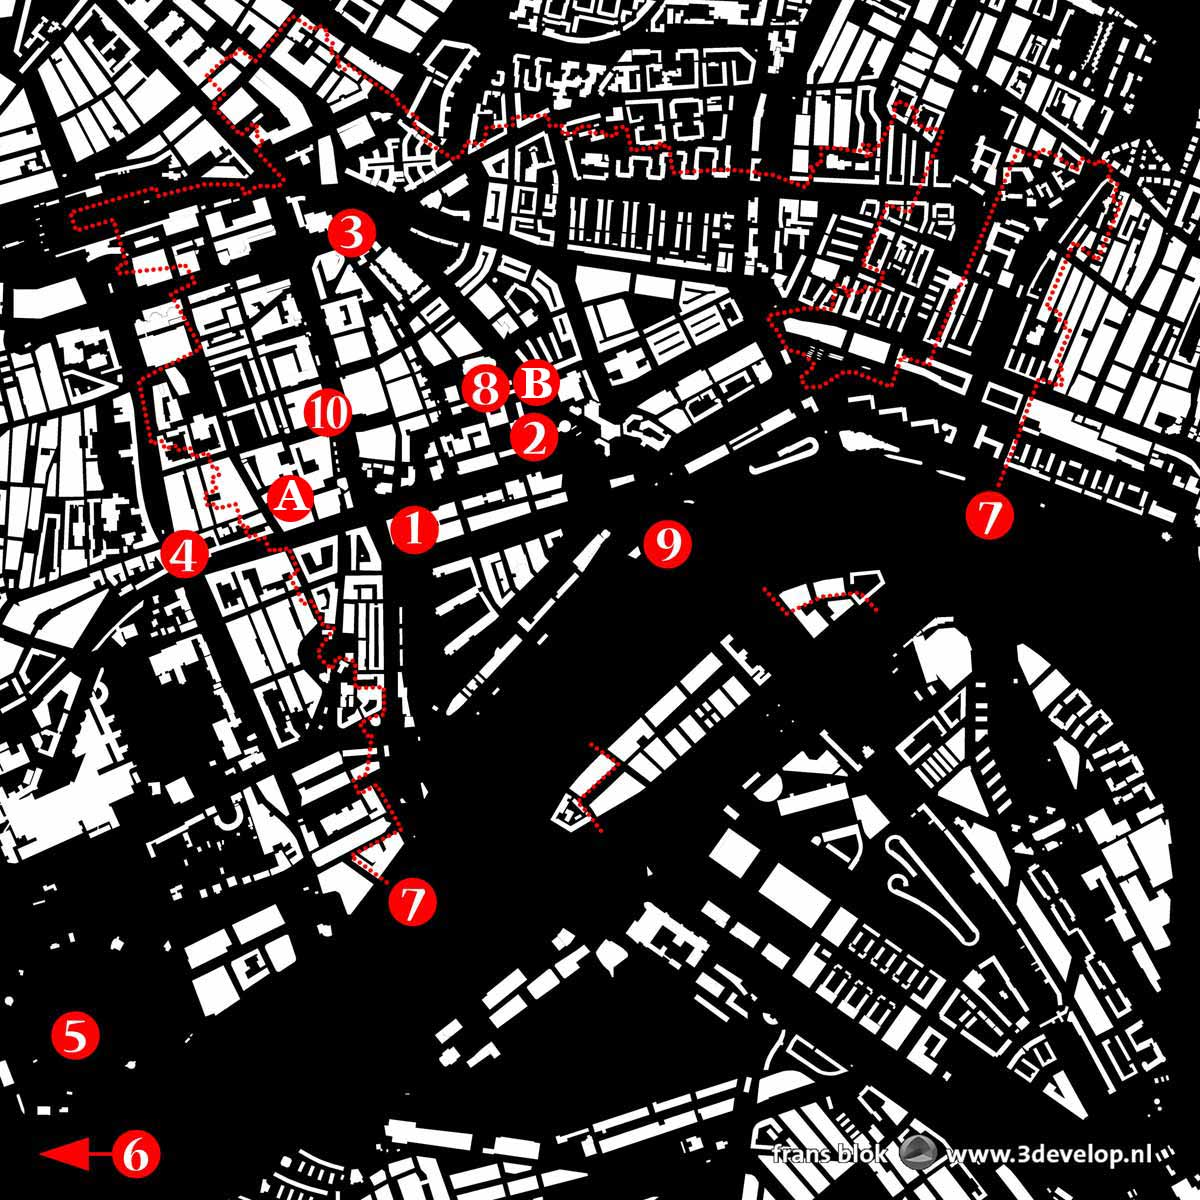 Map of downtown Rotterdam with the locations of the entries in the public sculpture top 10